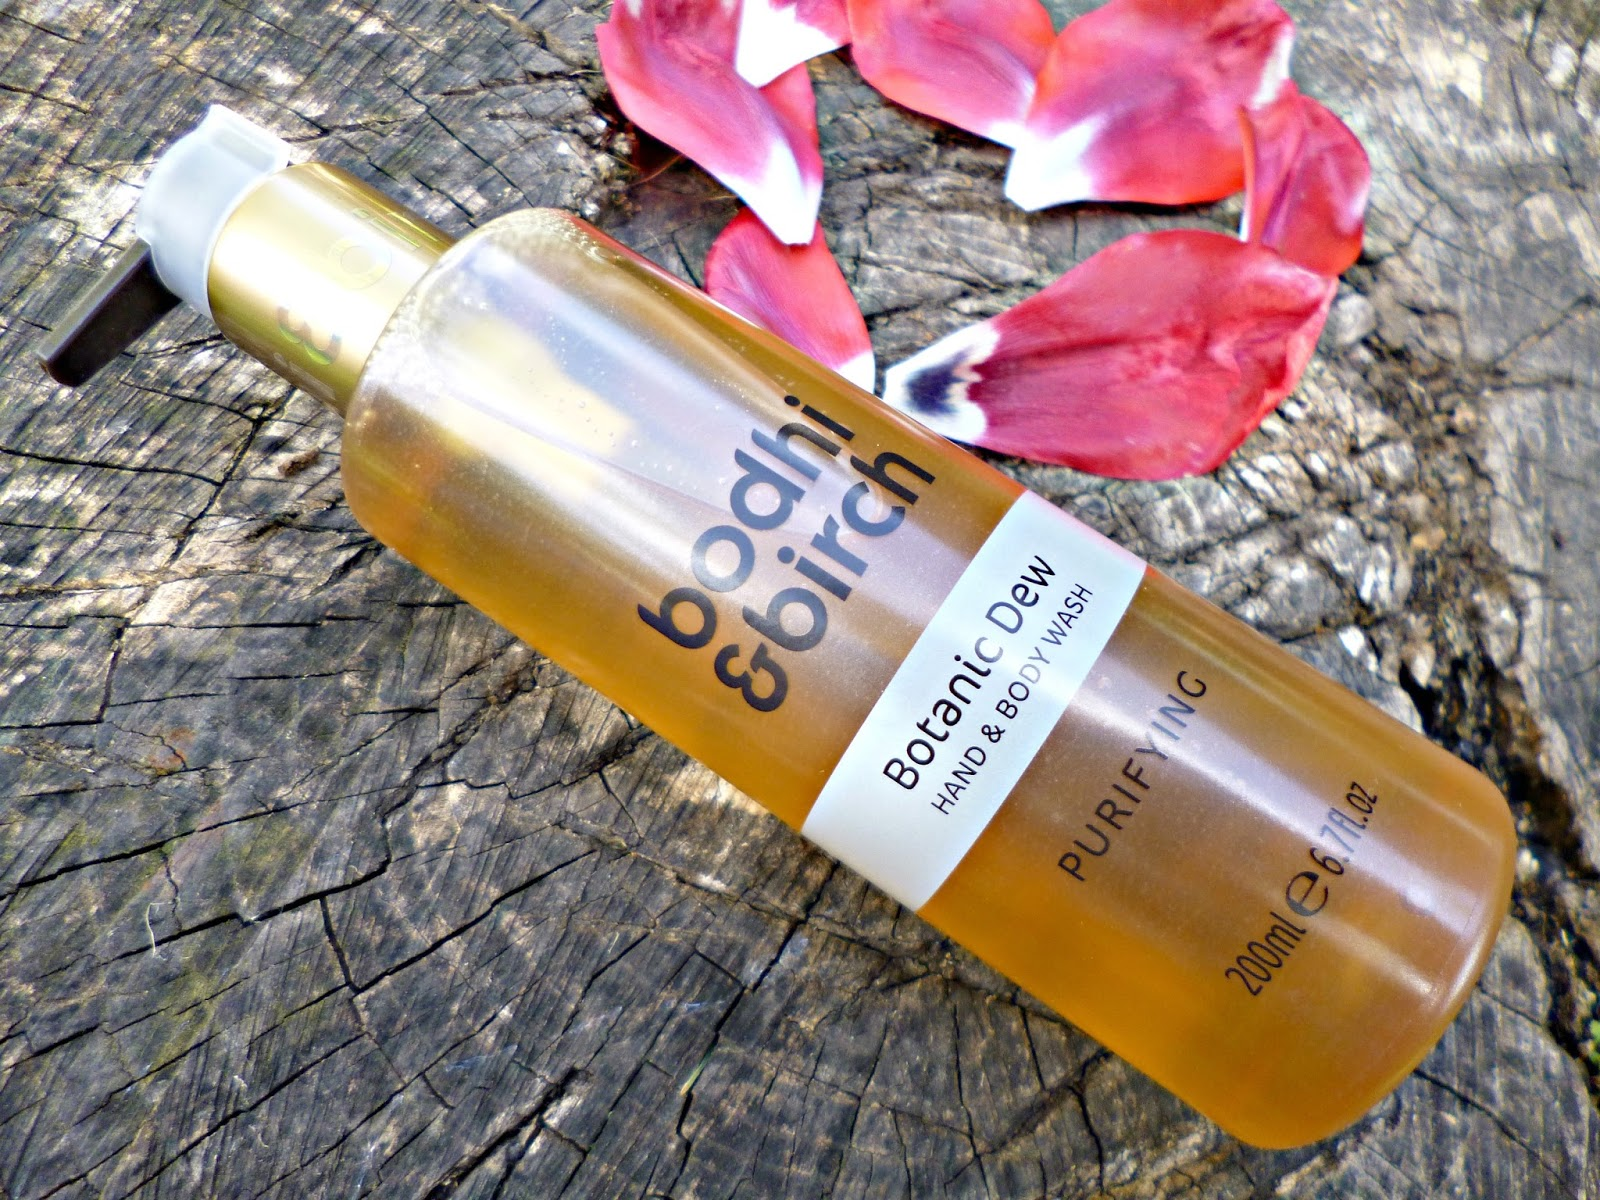 New in: Bodhi and Birch Botanic Dew hand and body wash